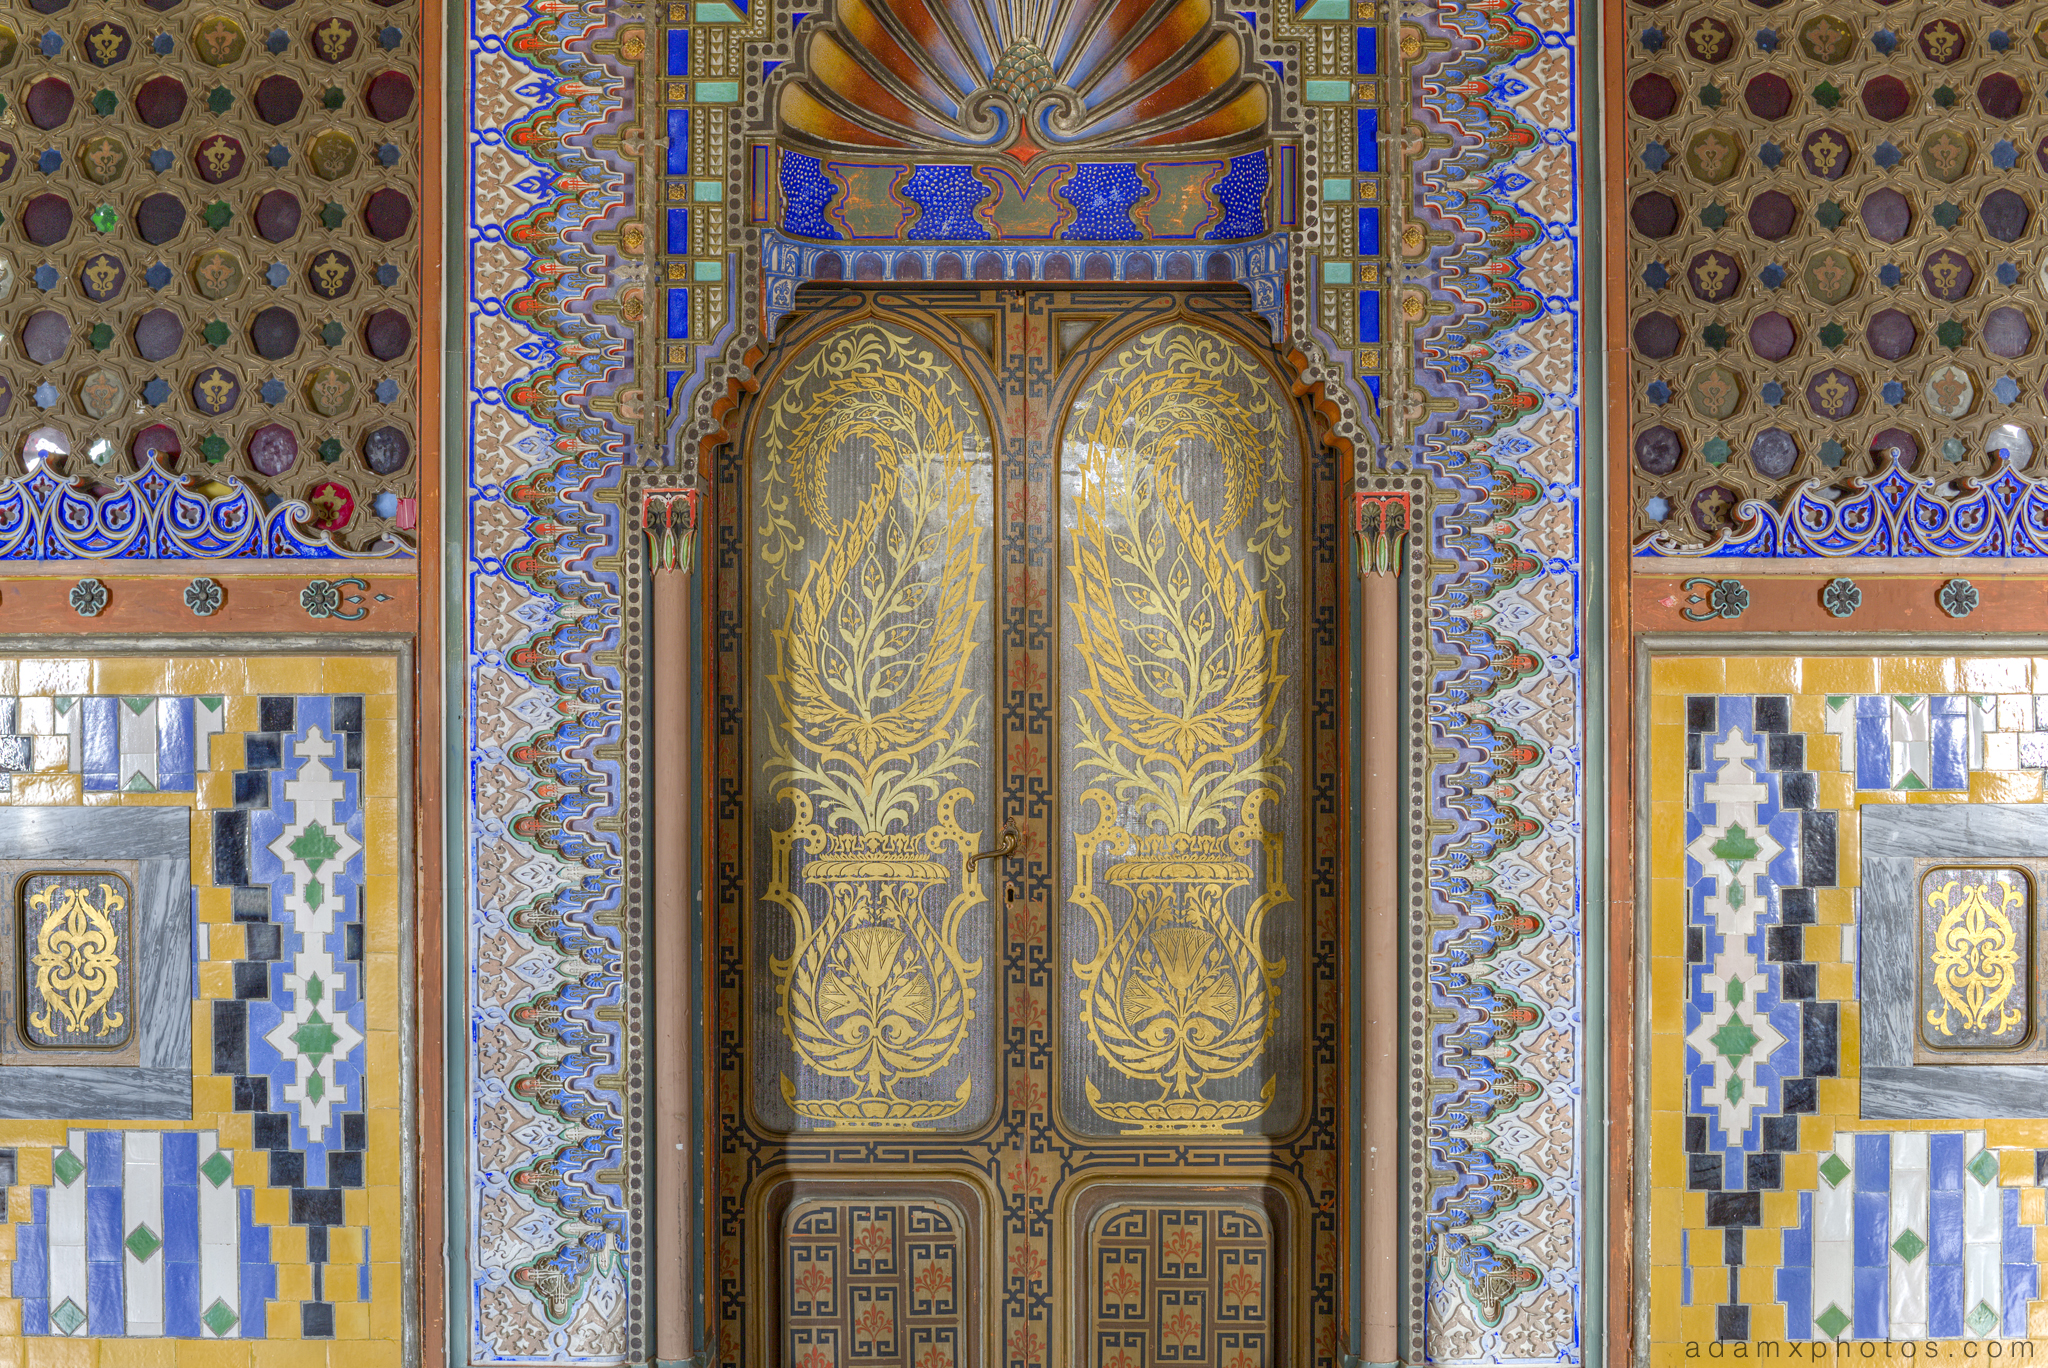 Peacock Room detail doors tiles colours Non Plus Ultra Fairytale Castle of Sammezzano Castello di Sammezzano Urbex Adam X Urban Exploration photo photos report decay detail UE abandoned Ornate Moorish tiling tiled derelict unused empty disused decay decayed decaying grimy grime